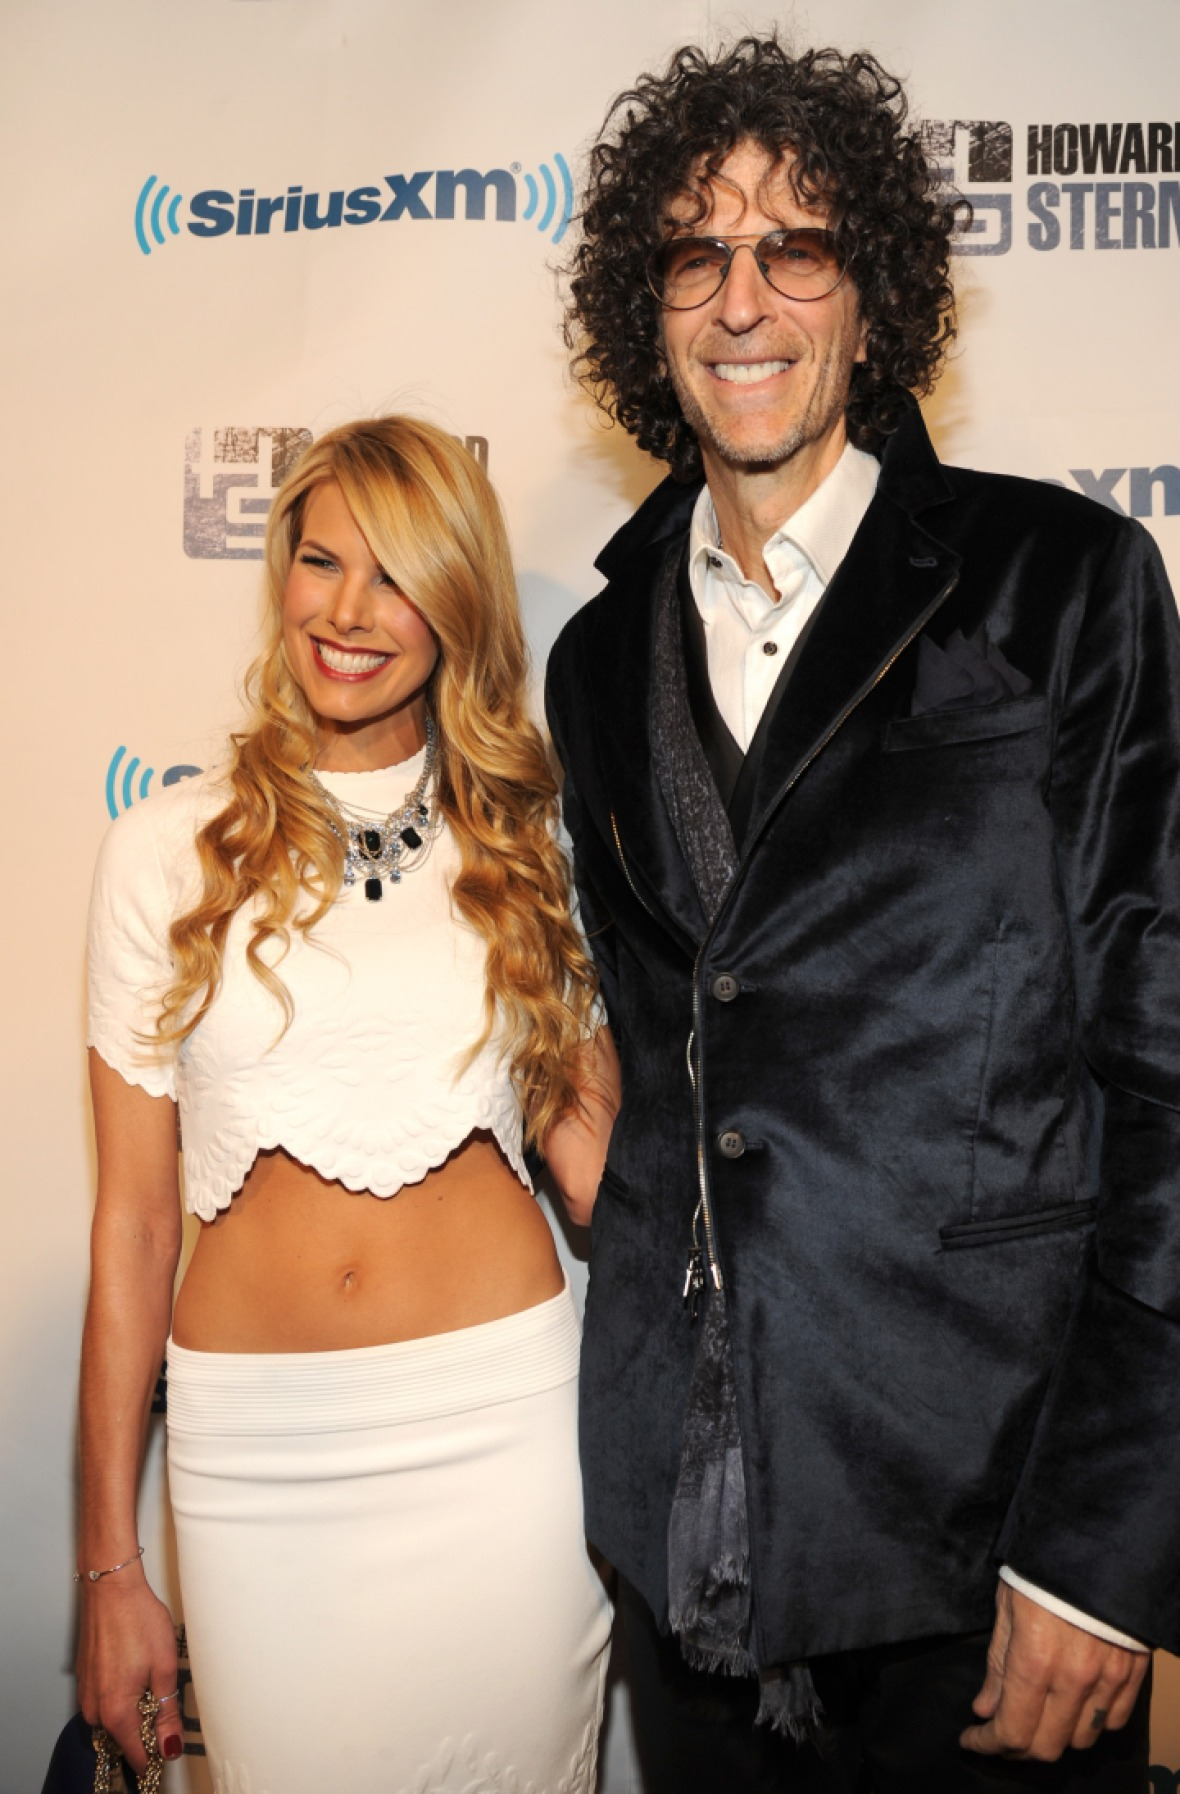 howard stern beth stern getty images